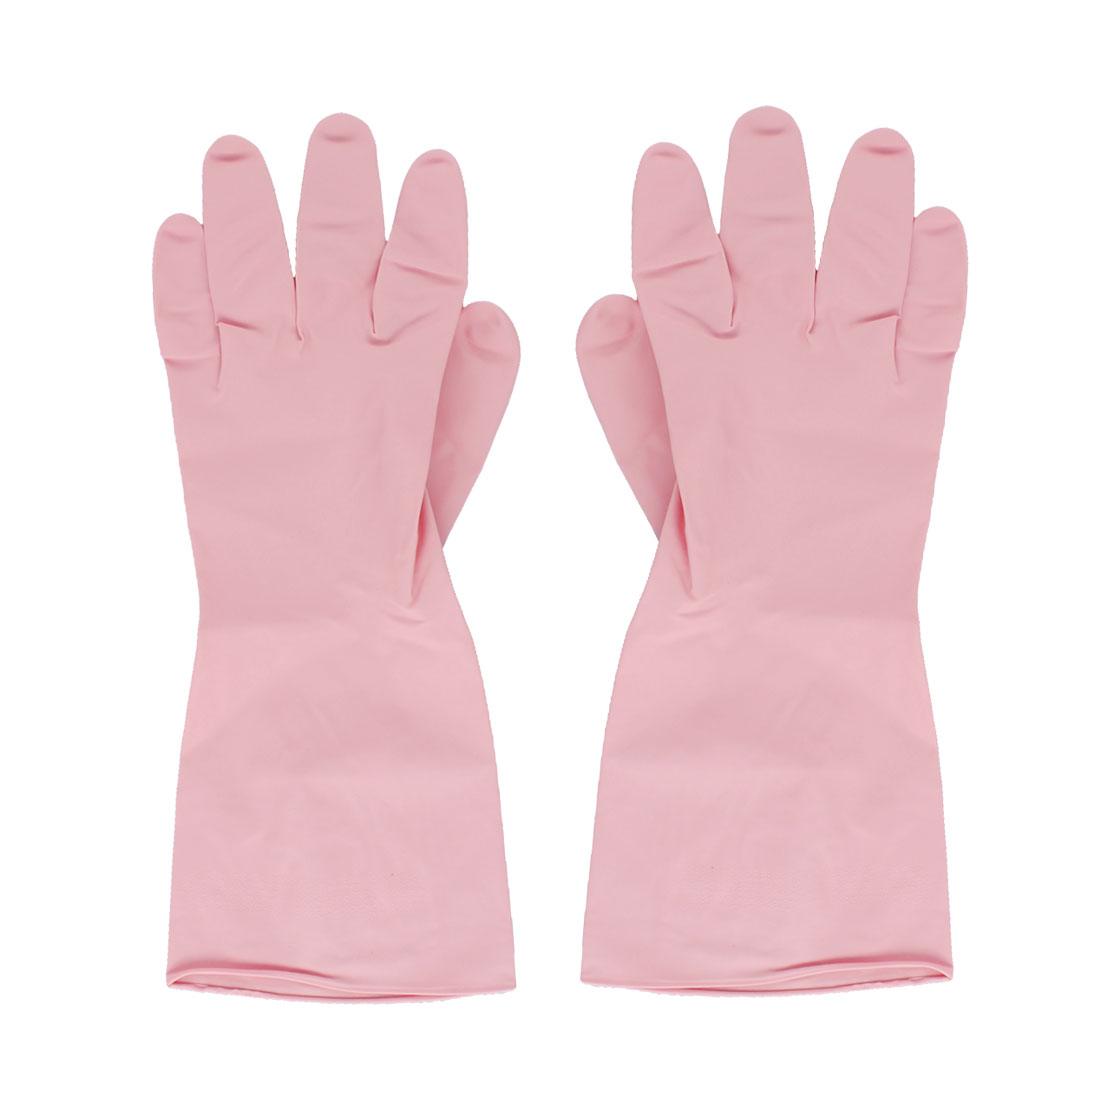 Kitchen Dish Washing Pink Rubber Gloves Protector Cleaning Tools Pair